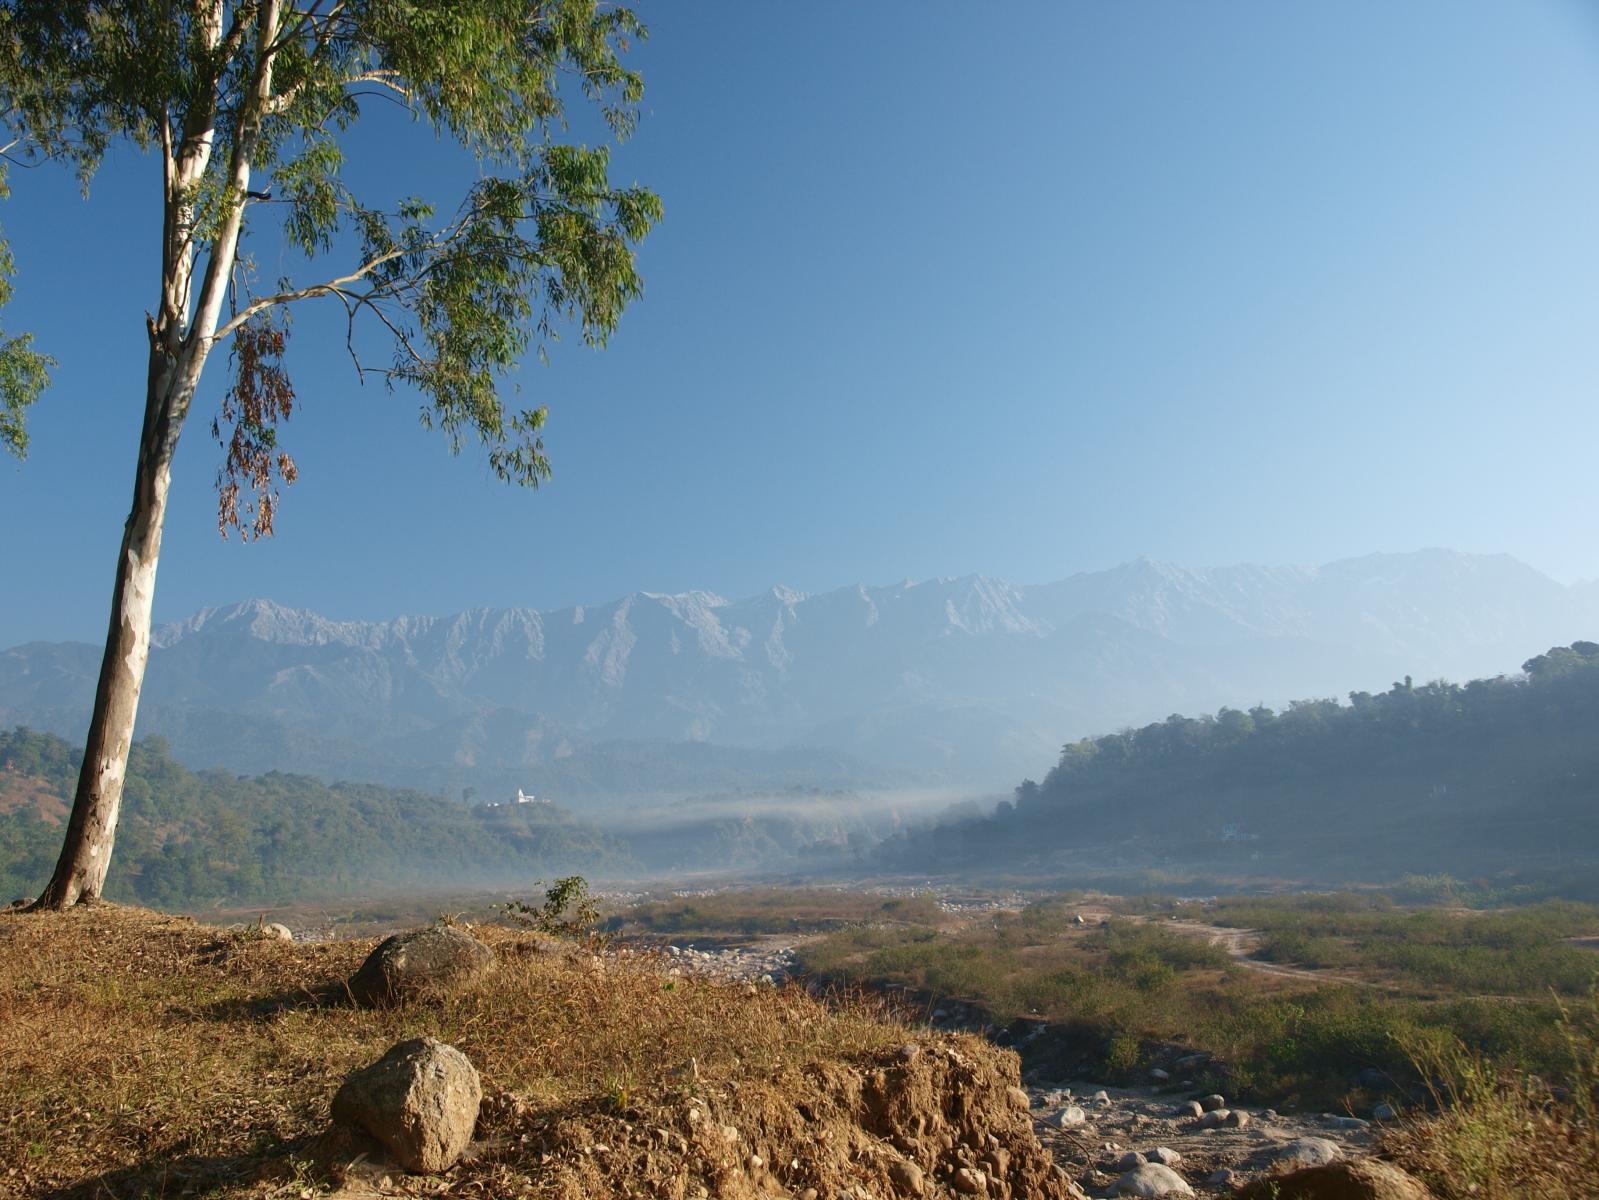 View_of_a_Himalayan_valley,_Himchal_Pradesh.jpg